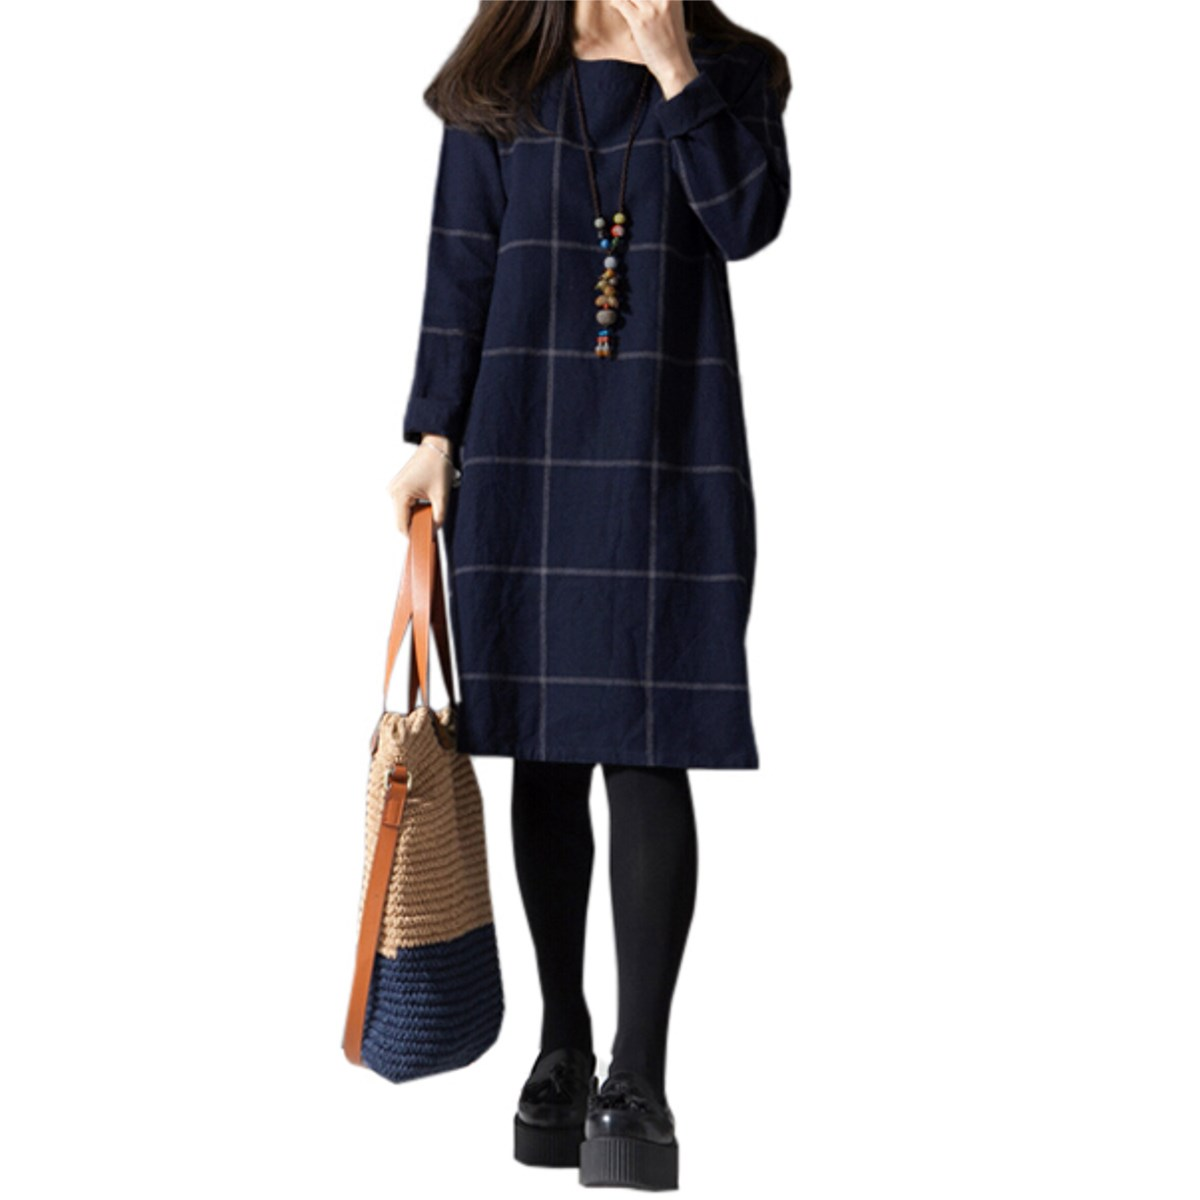 2016 Spring New Large Size Women Loose Clothing Arts Style Casual Dresses Korean Long Sleeved